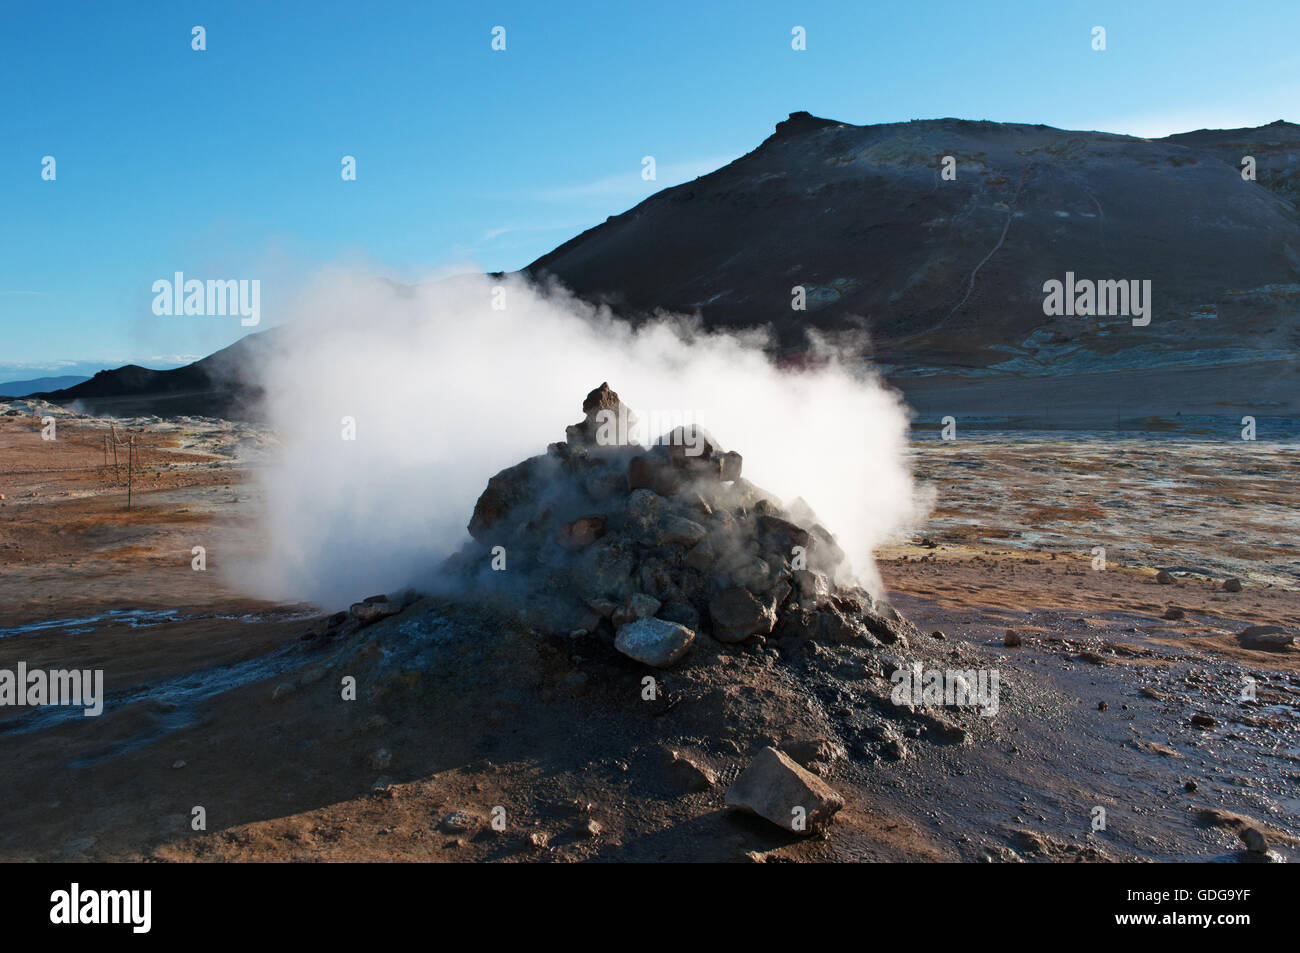 Iceland: Hverir, a geothermal area in the Myvatn region, famous for its fumaroles, hot springs and sulfur - Stock Image